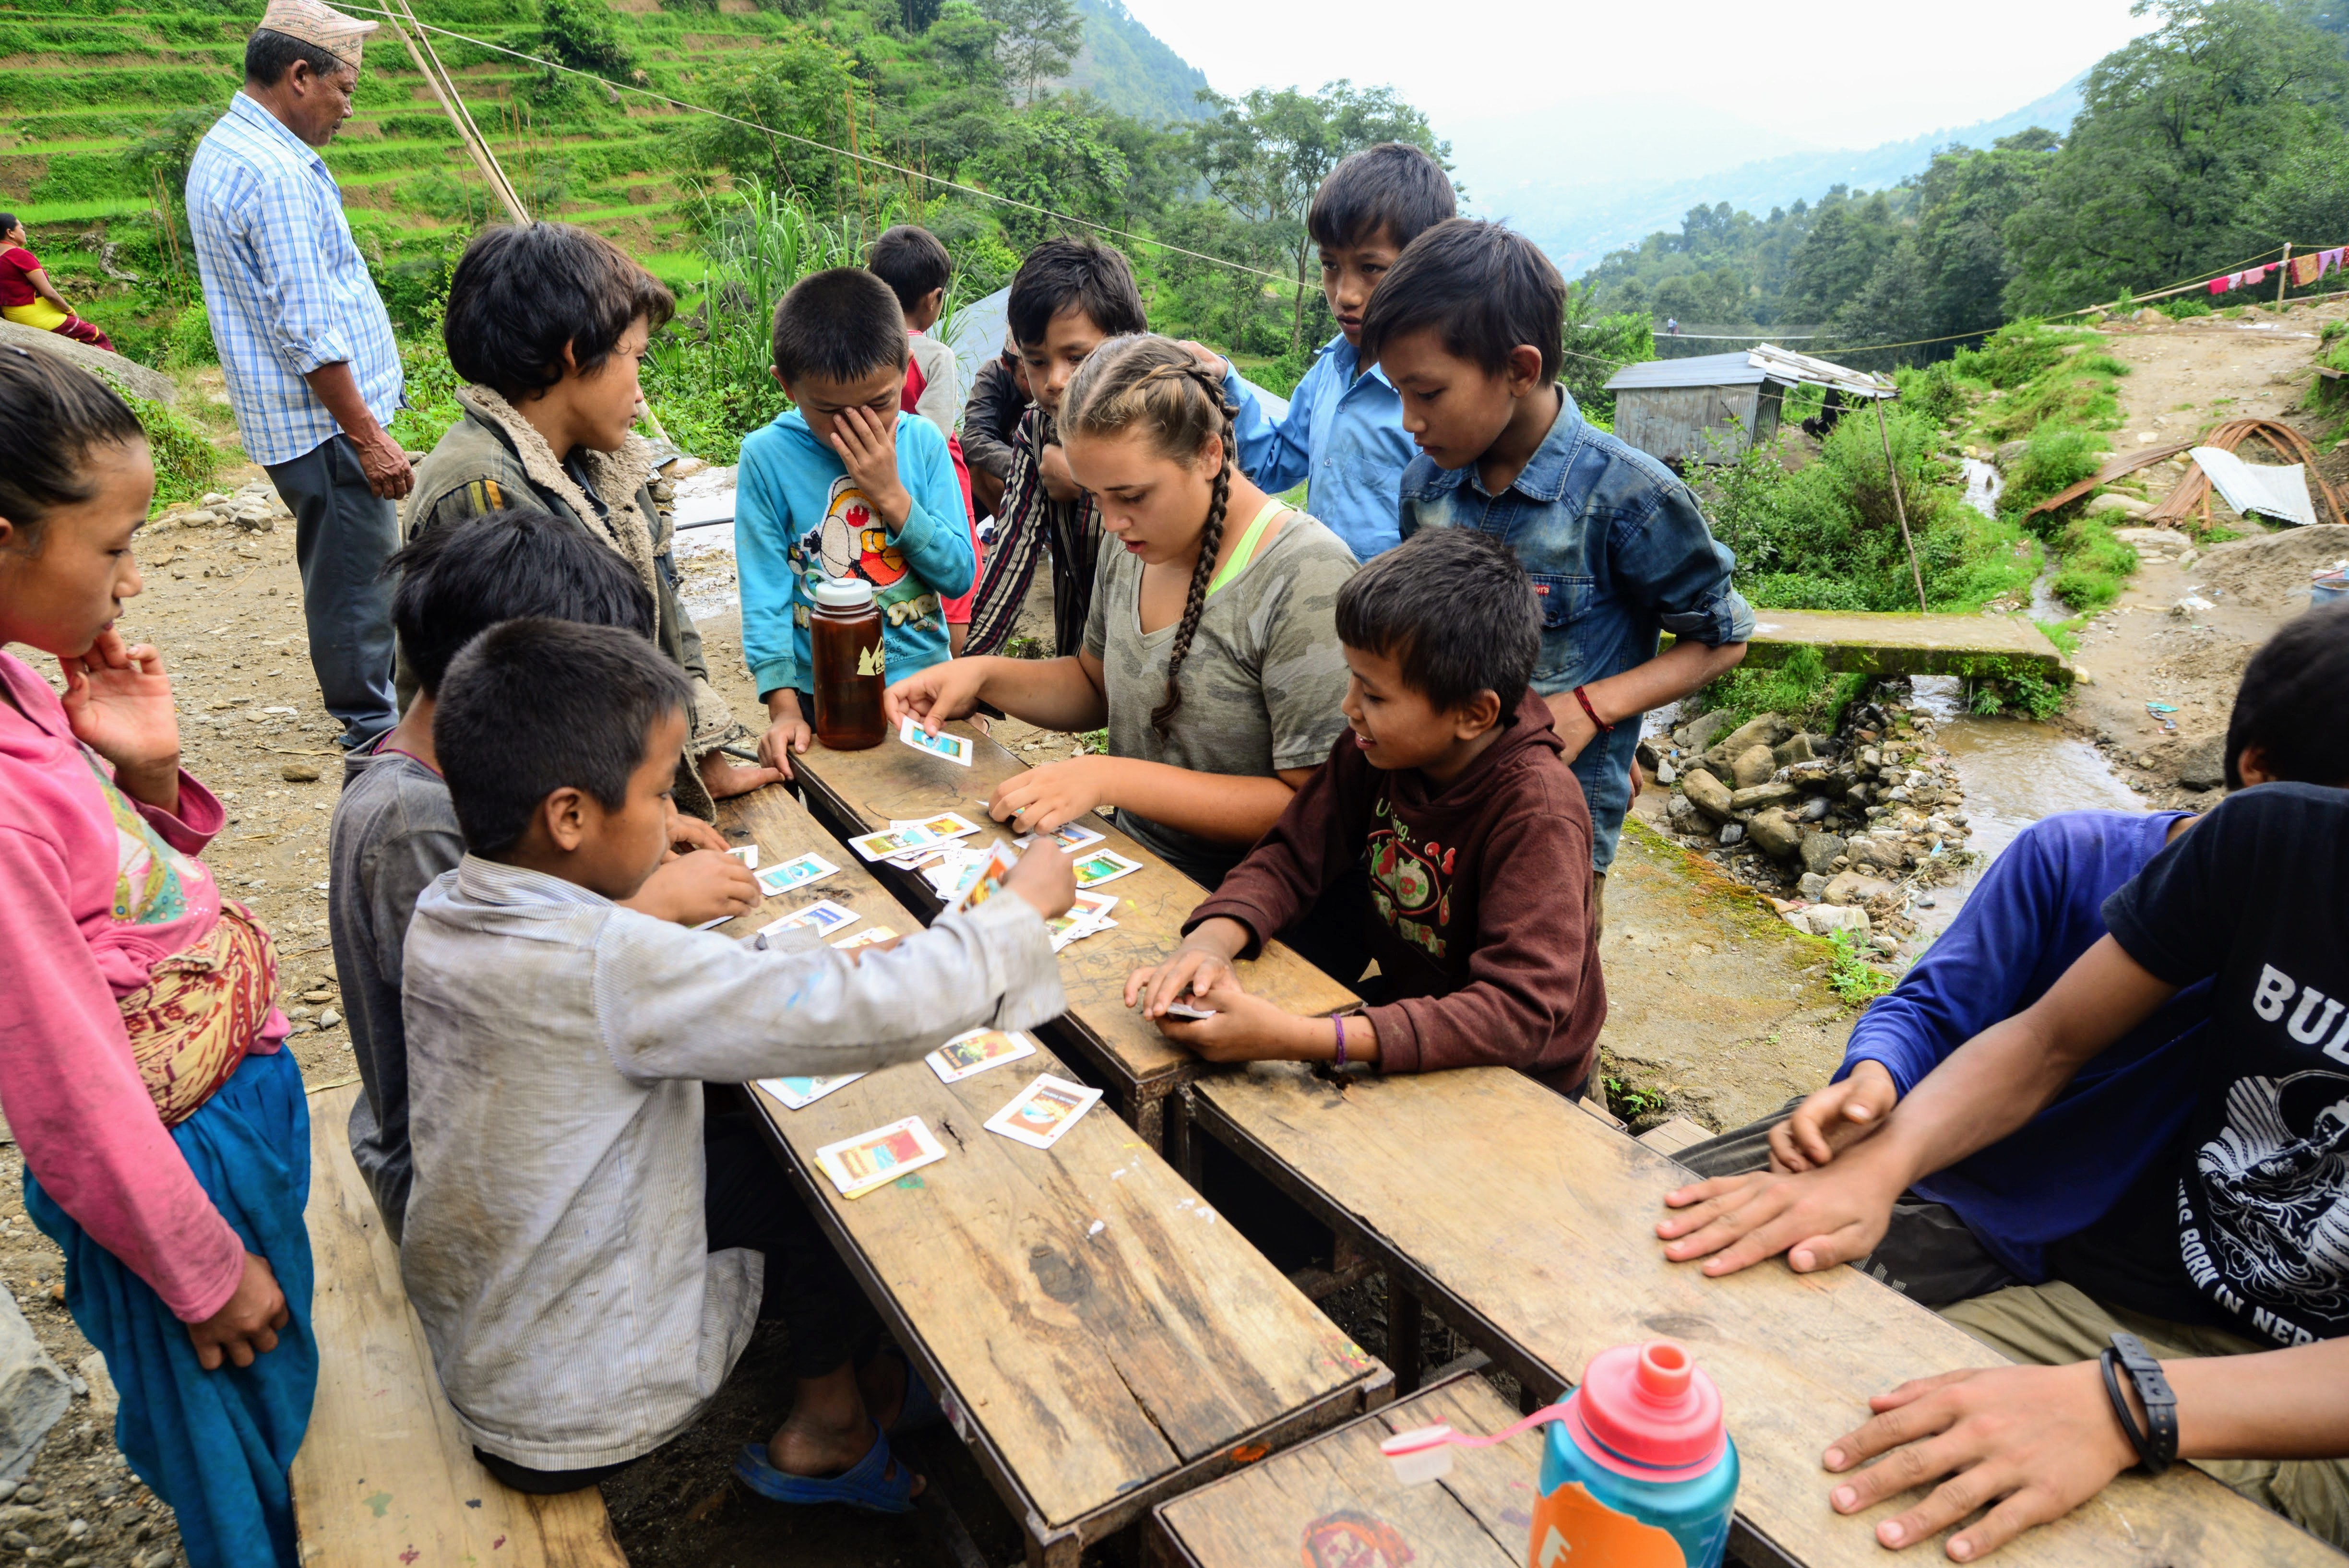 Summer Program - Religious Studies | Global Routes: Nepal. The Roof of the World. Service and Cultural Immersion.